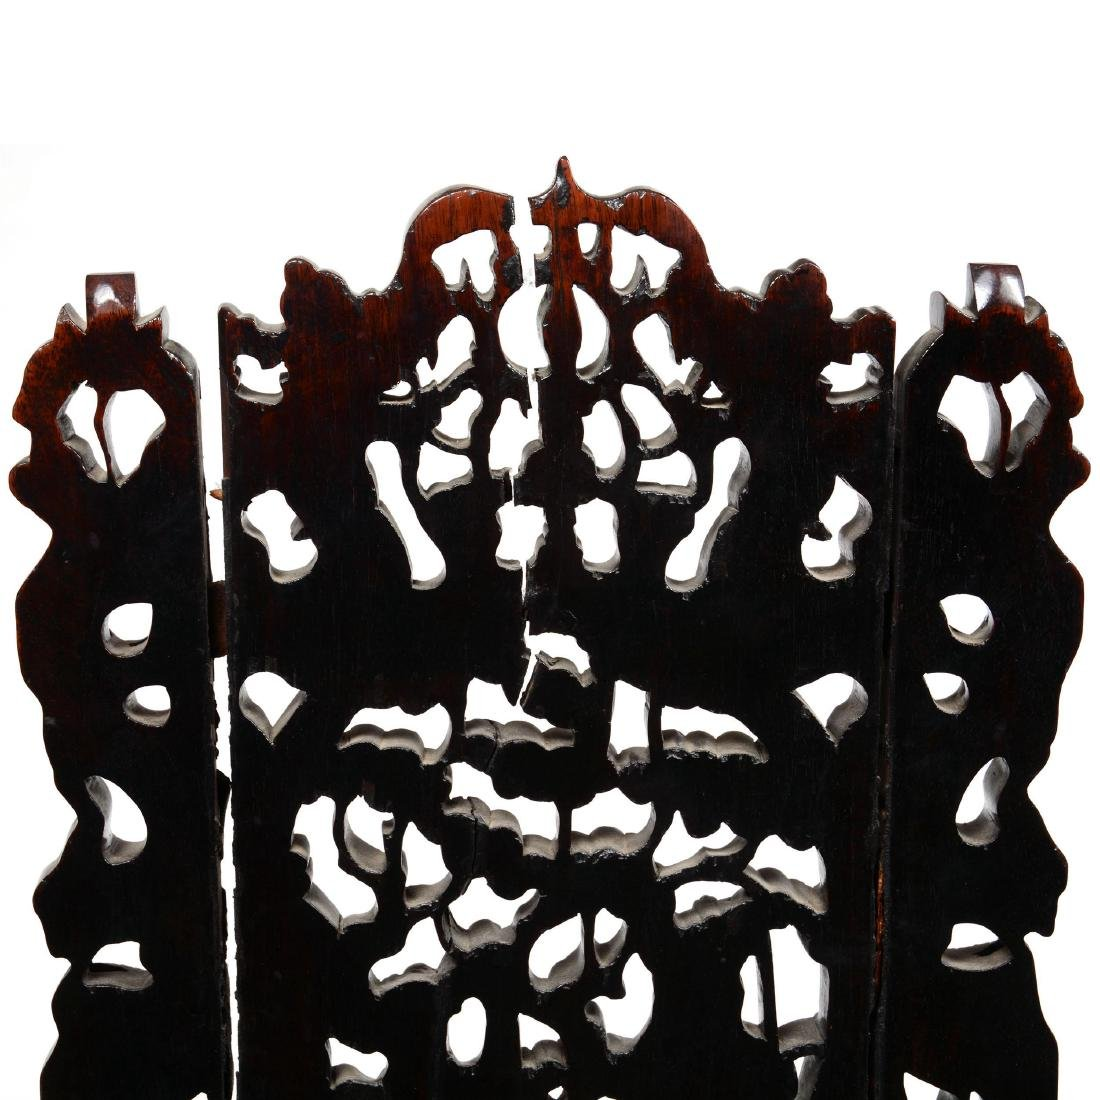 Antique Carved Teakwood Chair - 4